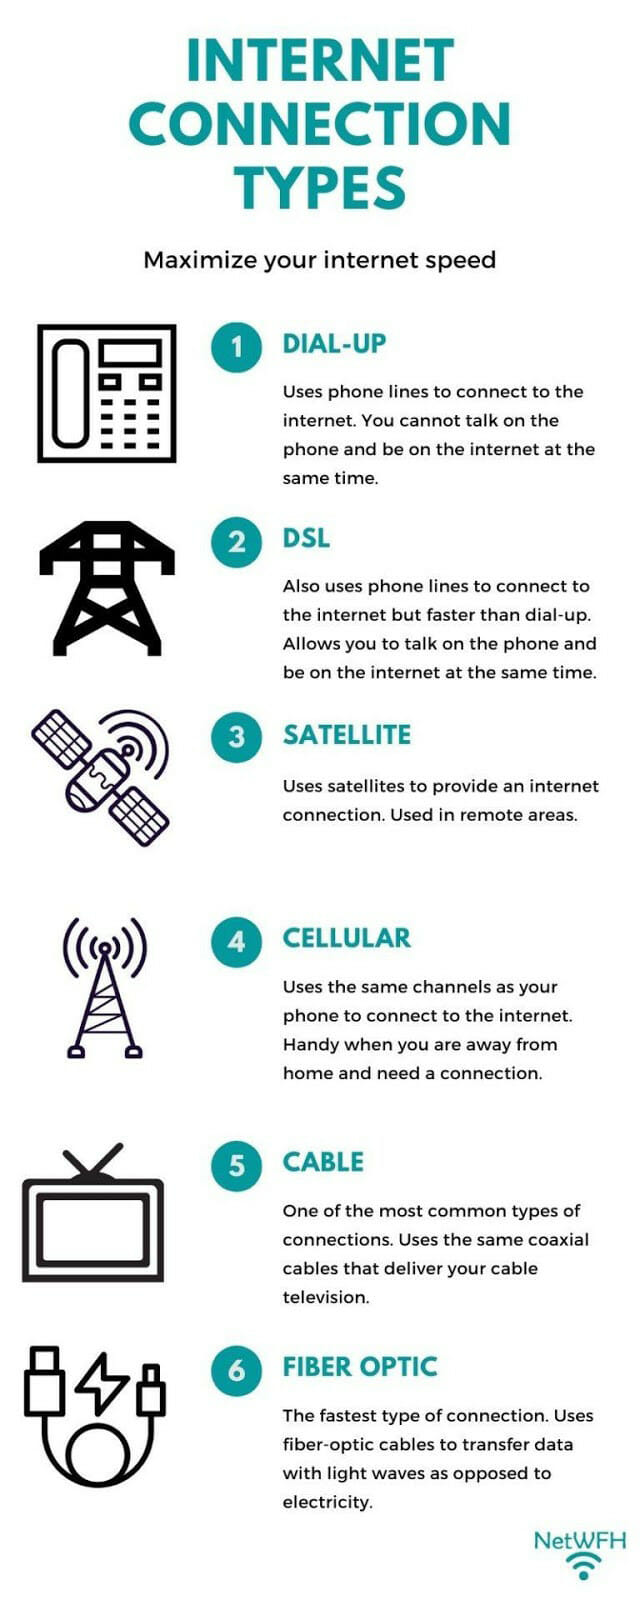 Types of Internet Connections Infographic